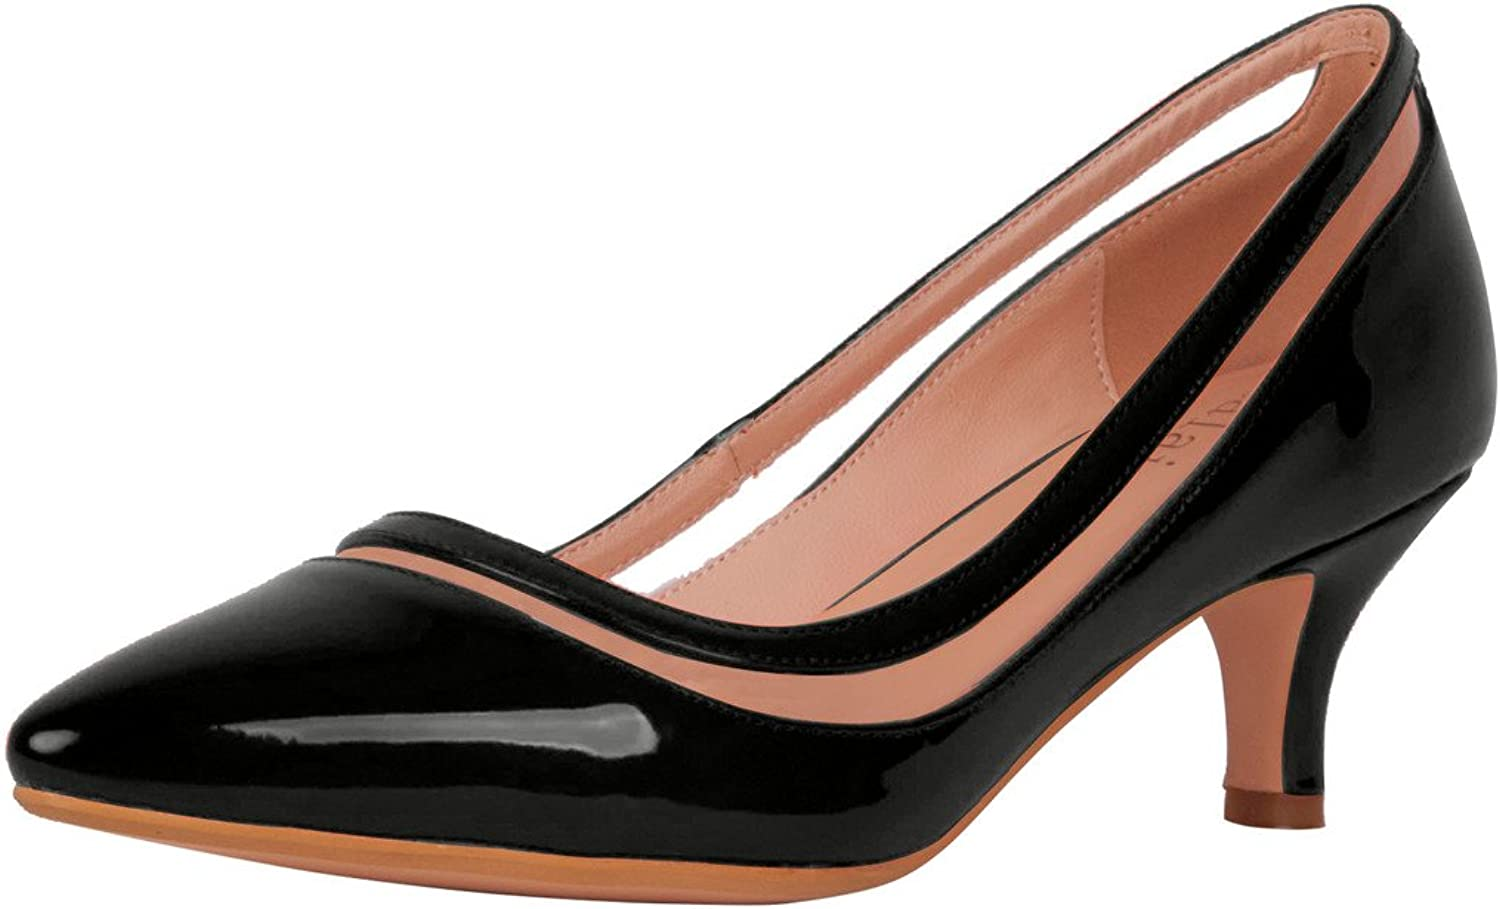 Calaier Womens Experience Closed-Toe 5.5CM Stiletto Slip-on Pumps shoes